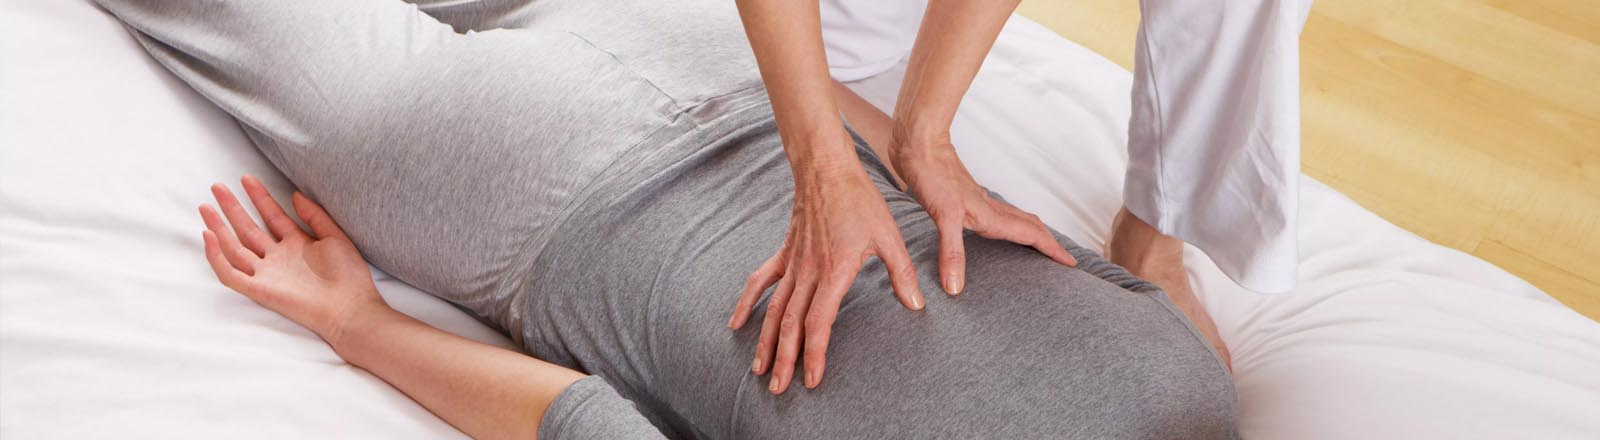 shiatsu - Fisio Global Bilbao